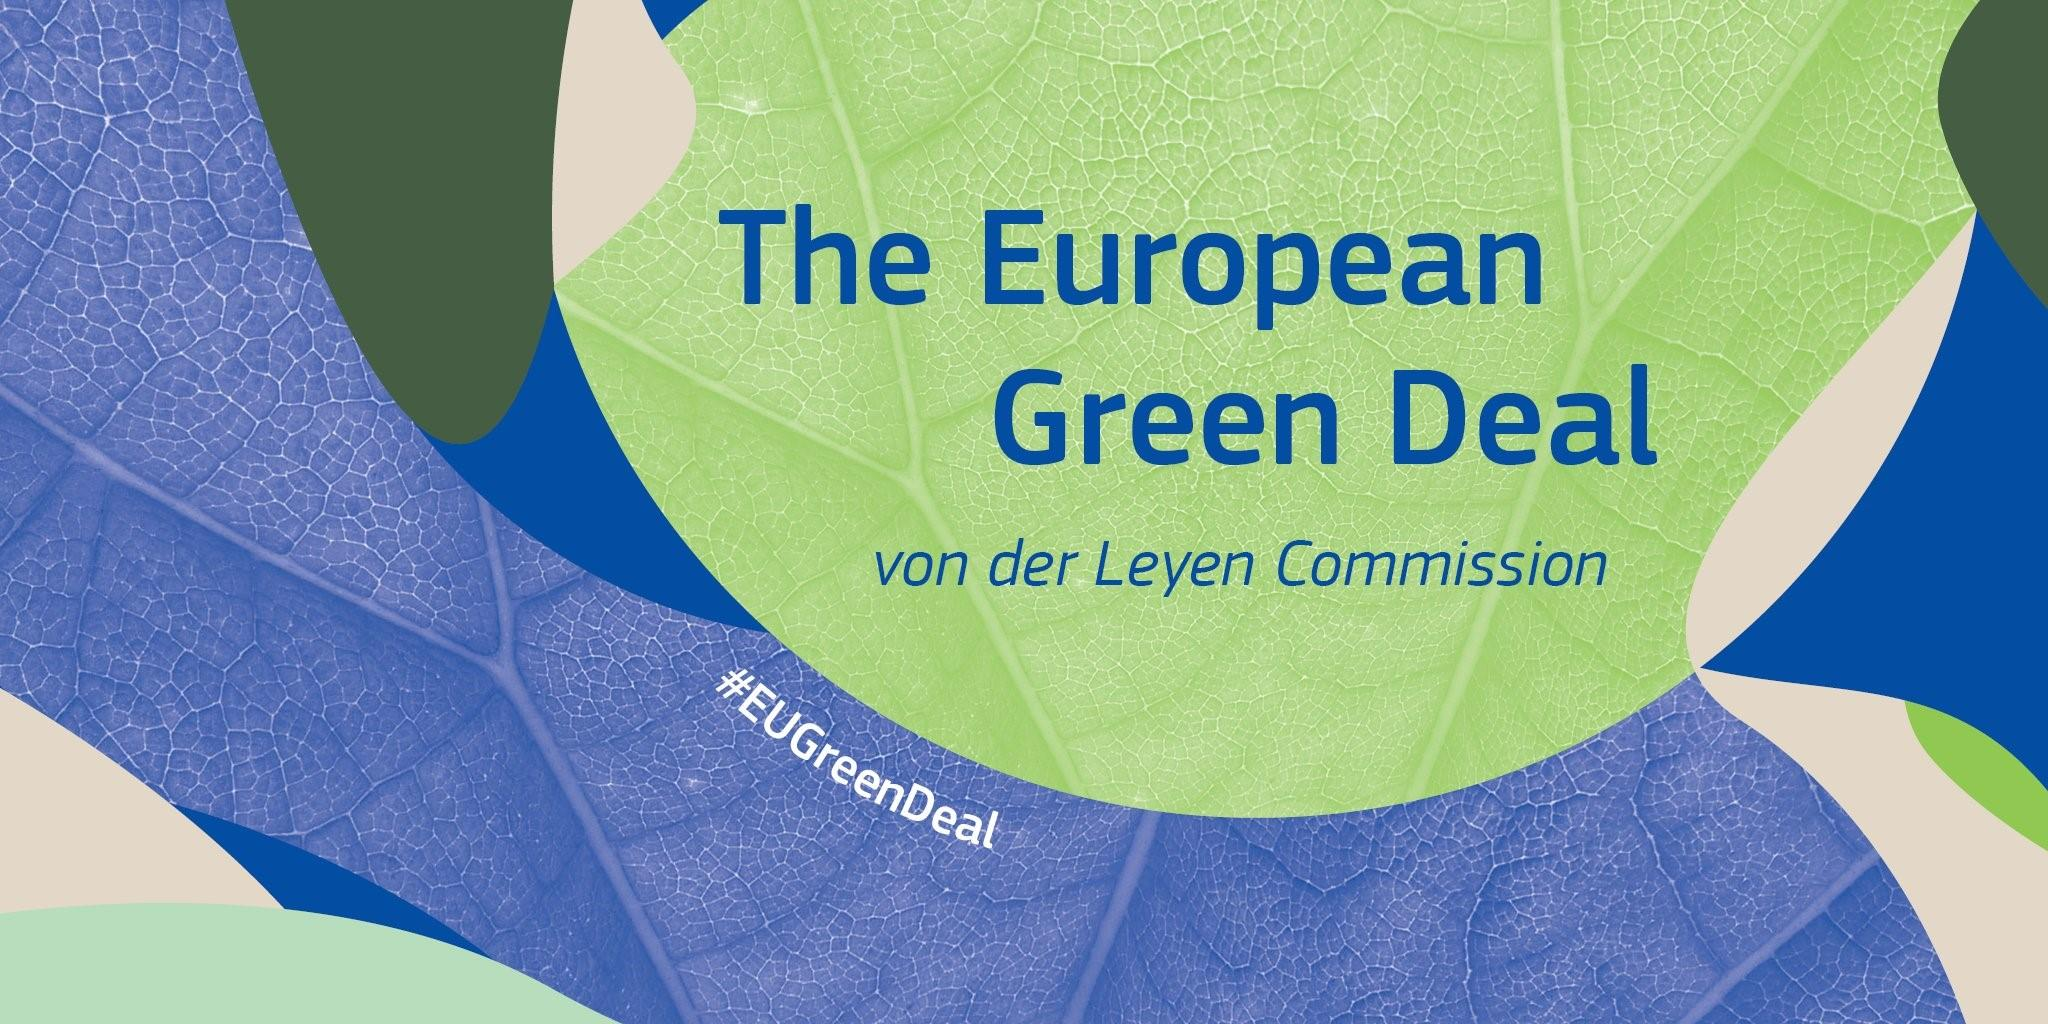 Green Deal Europeo